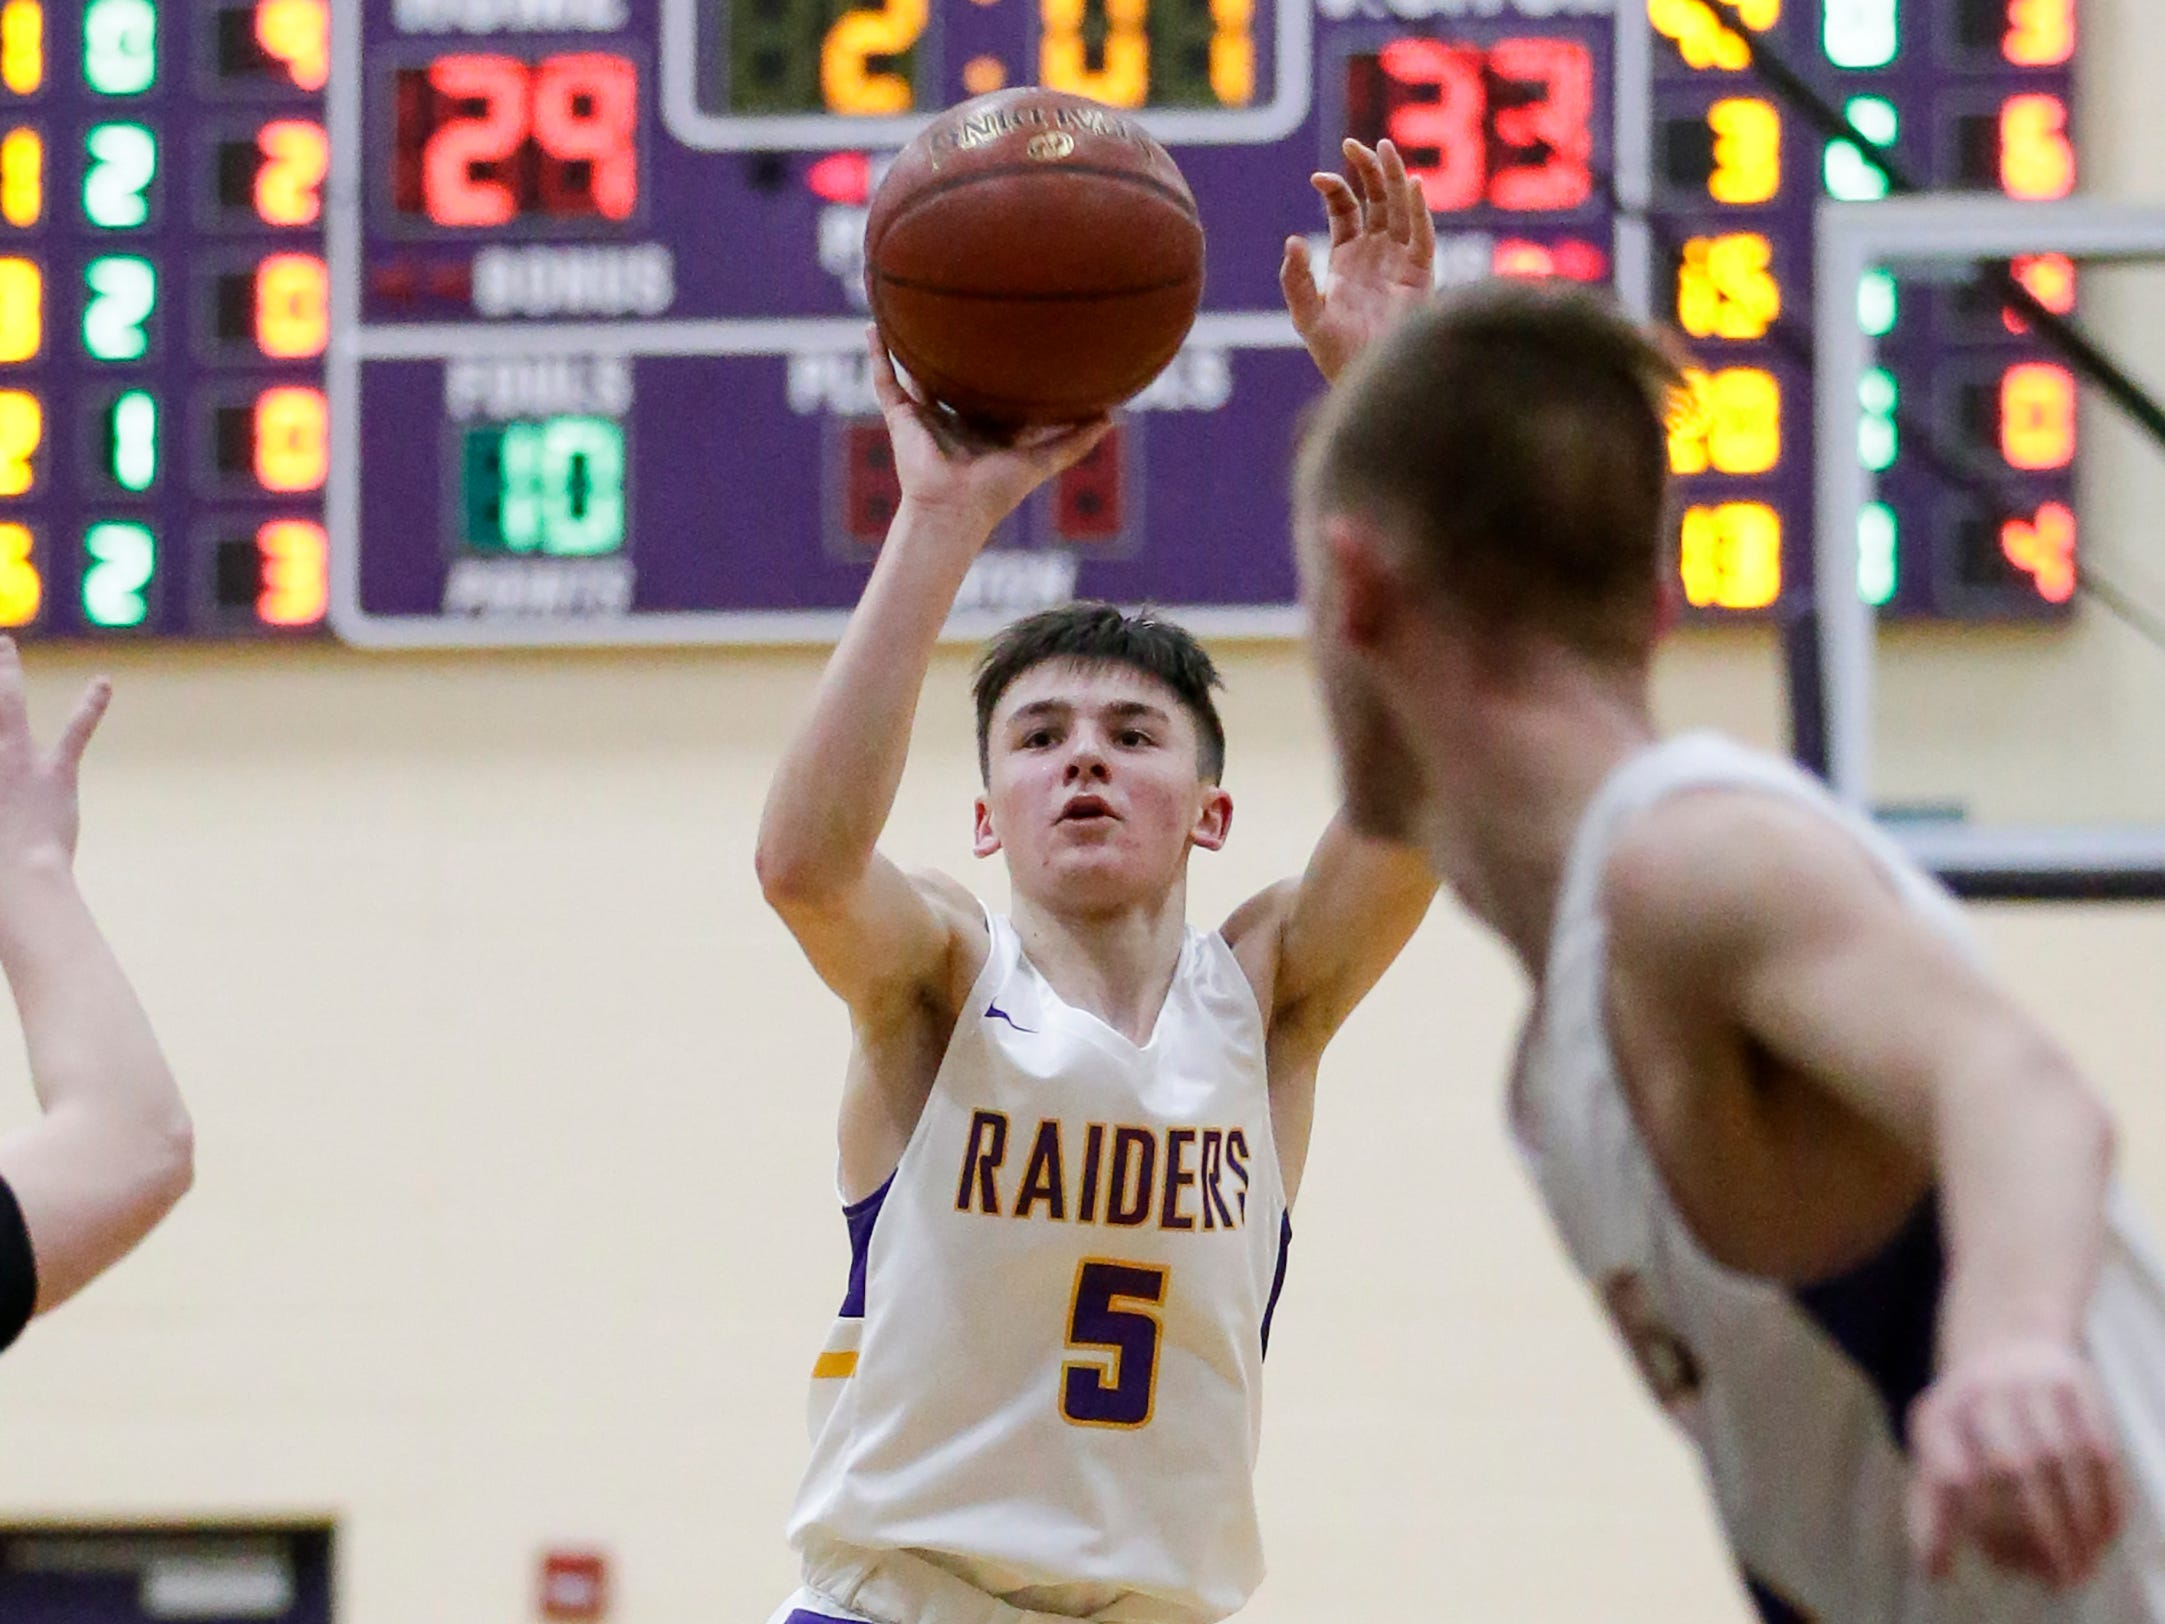 Two Rivers' Spencer Salta shoots against Green Bay NEW Lutheran at Two Rivers High School Tuesday, January 8, 2019, in Two Rivers, Wis. Joshua Clark/USA TODAY NETWORK-Wisconsin